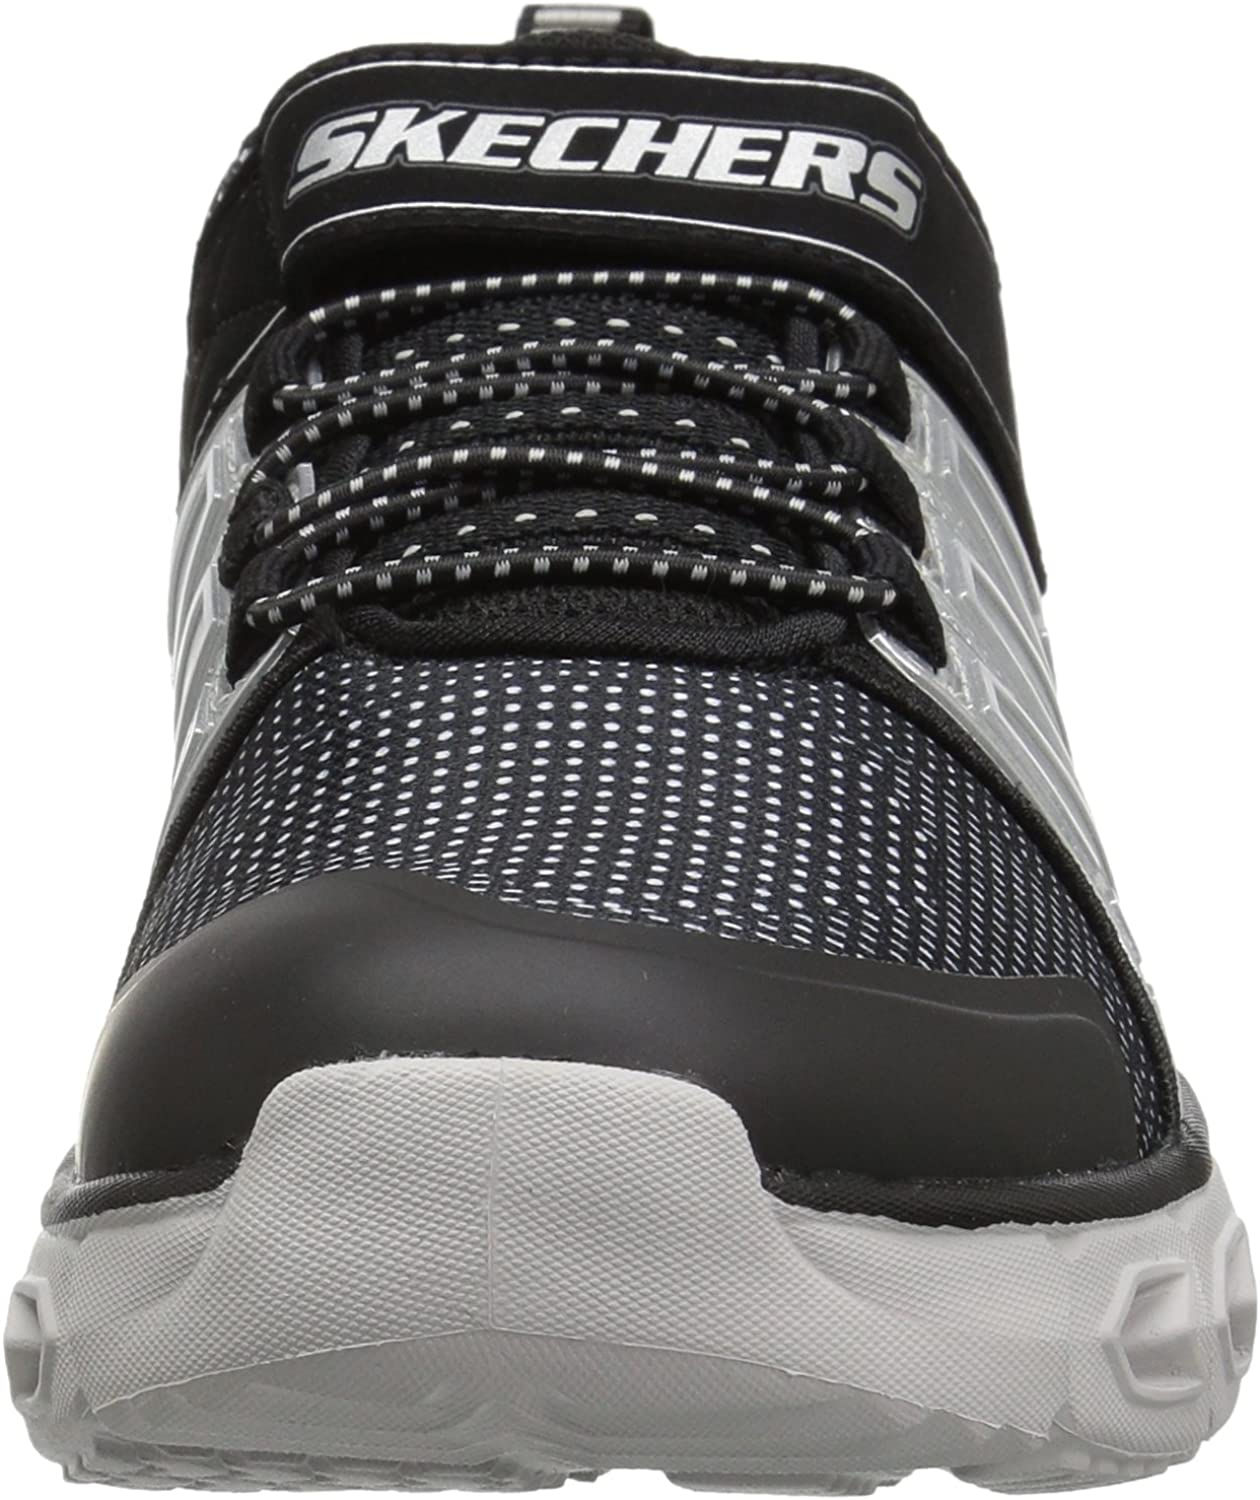 Skechers Kids Kids Hypno-Flash 2.0 Sneaker